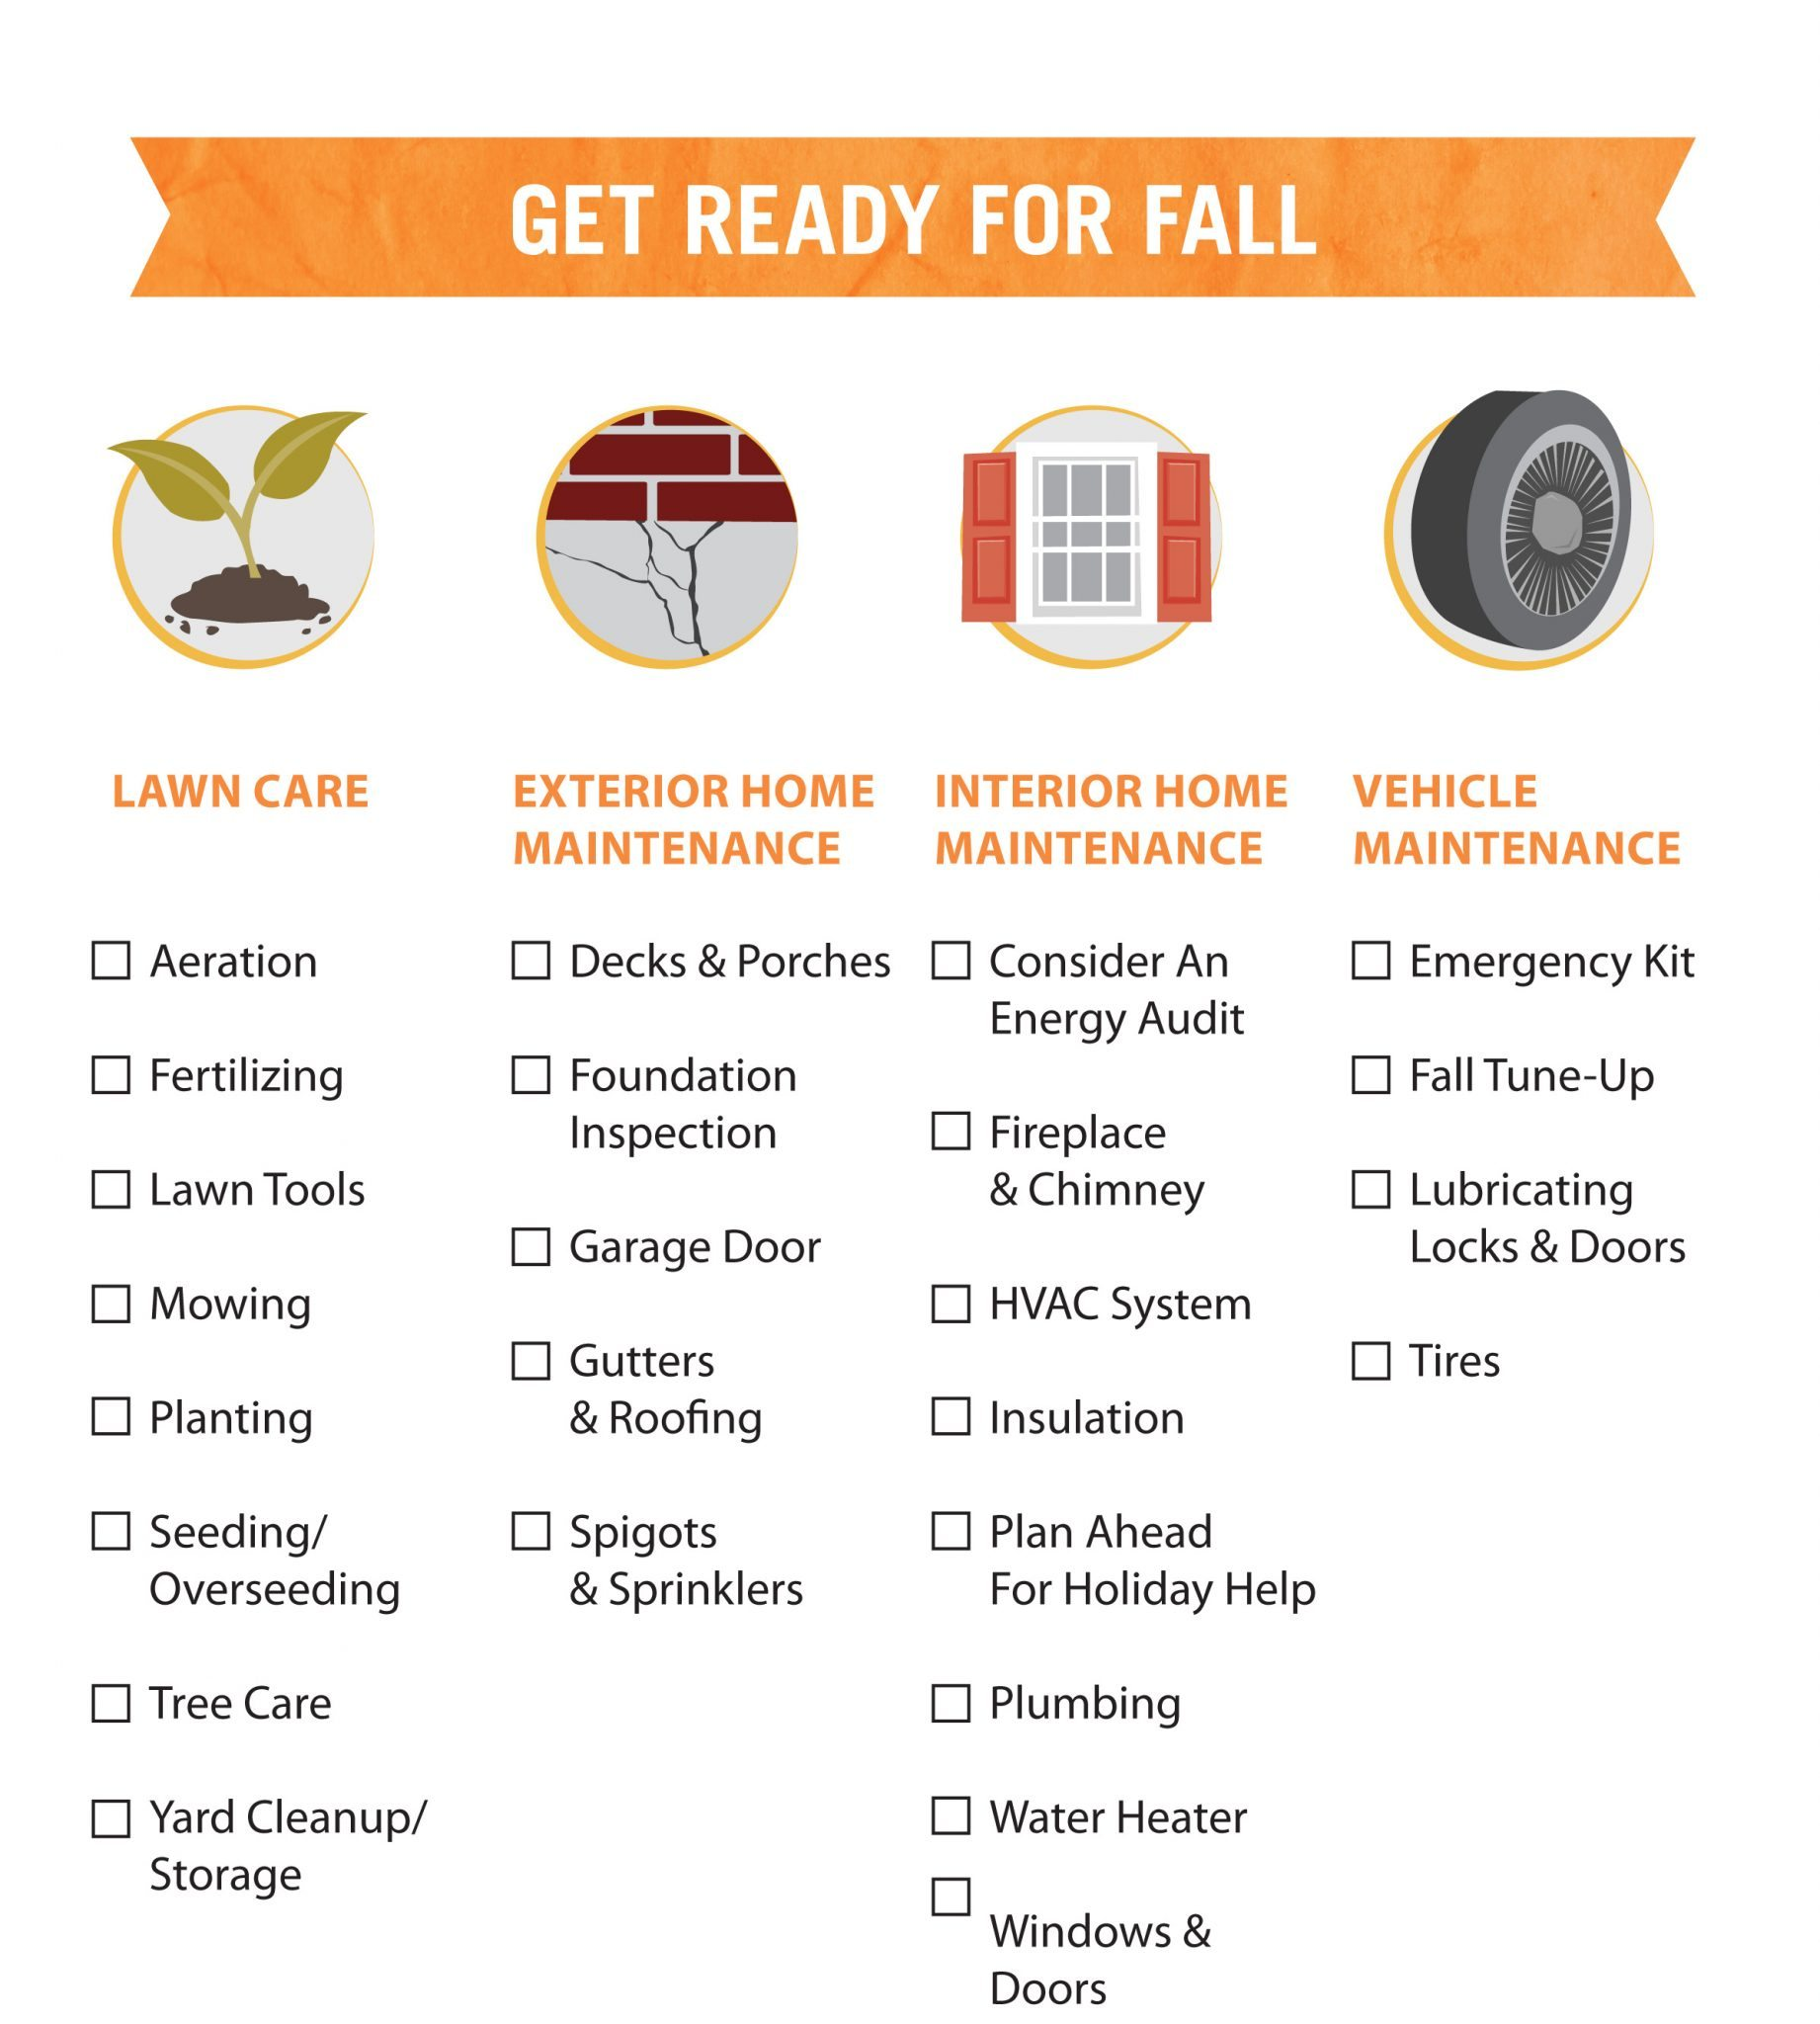 Ten fall home maintenance tips to check off your list for Fall home preparation